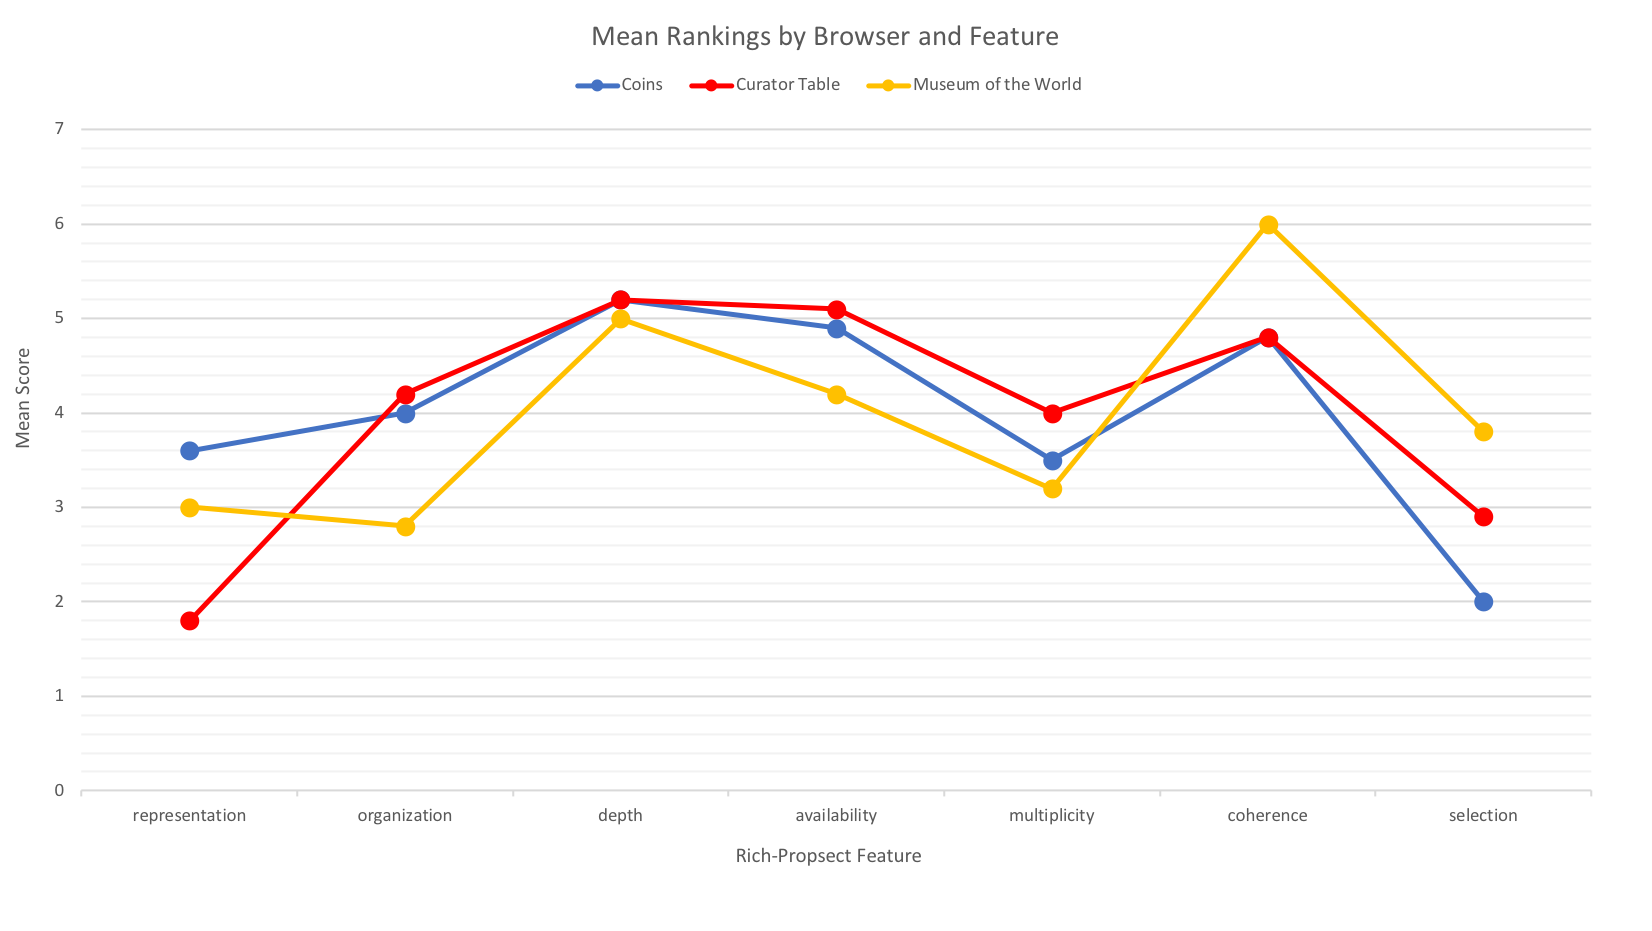 A table showing mean rankings by browser and feature